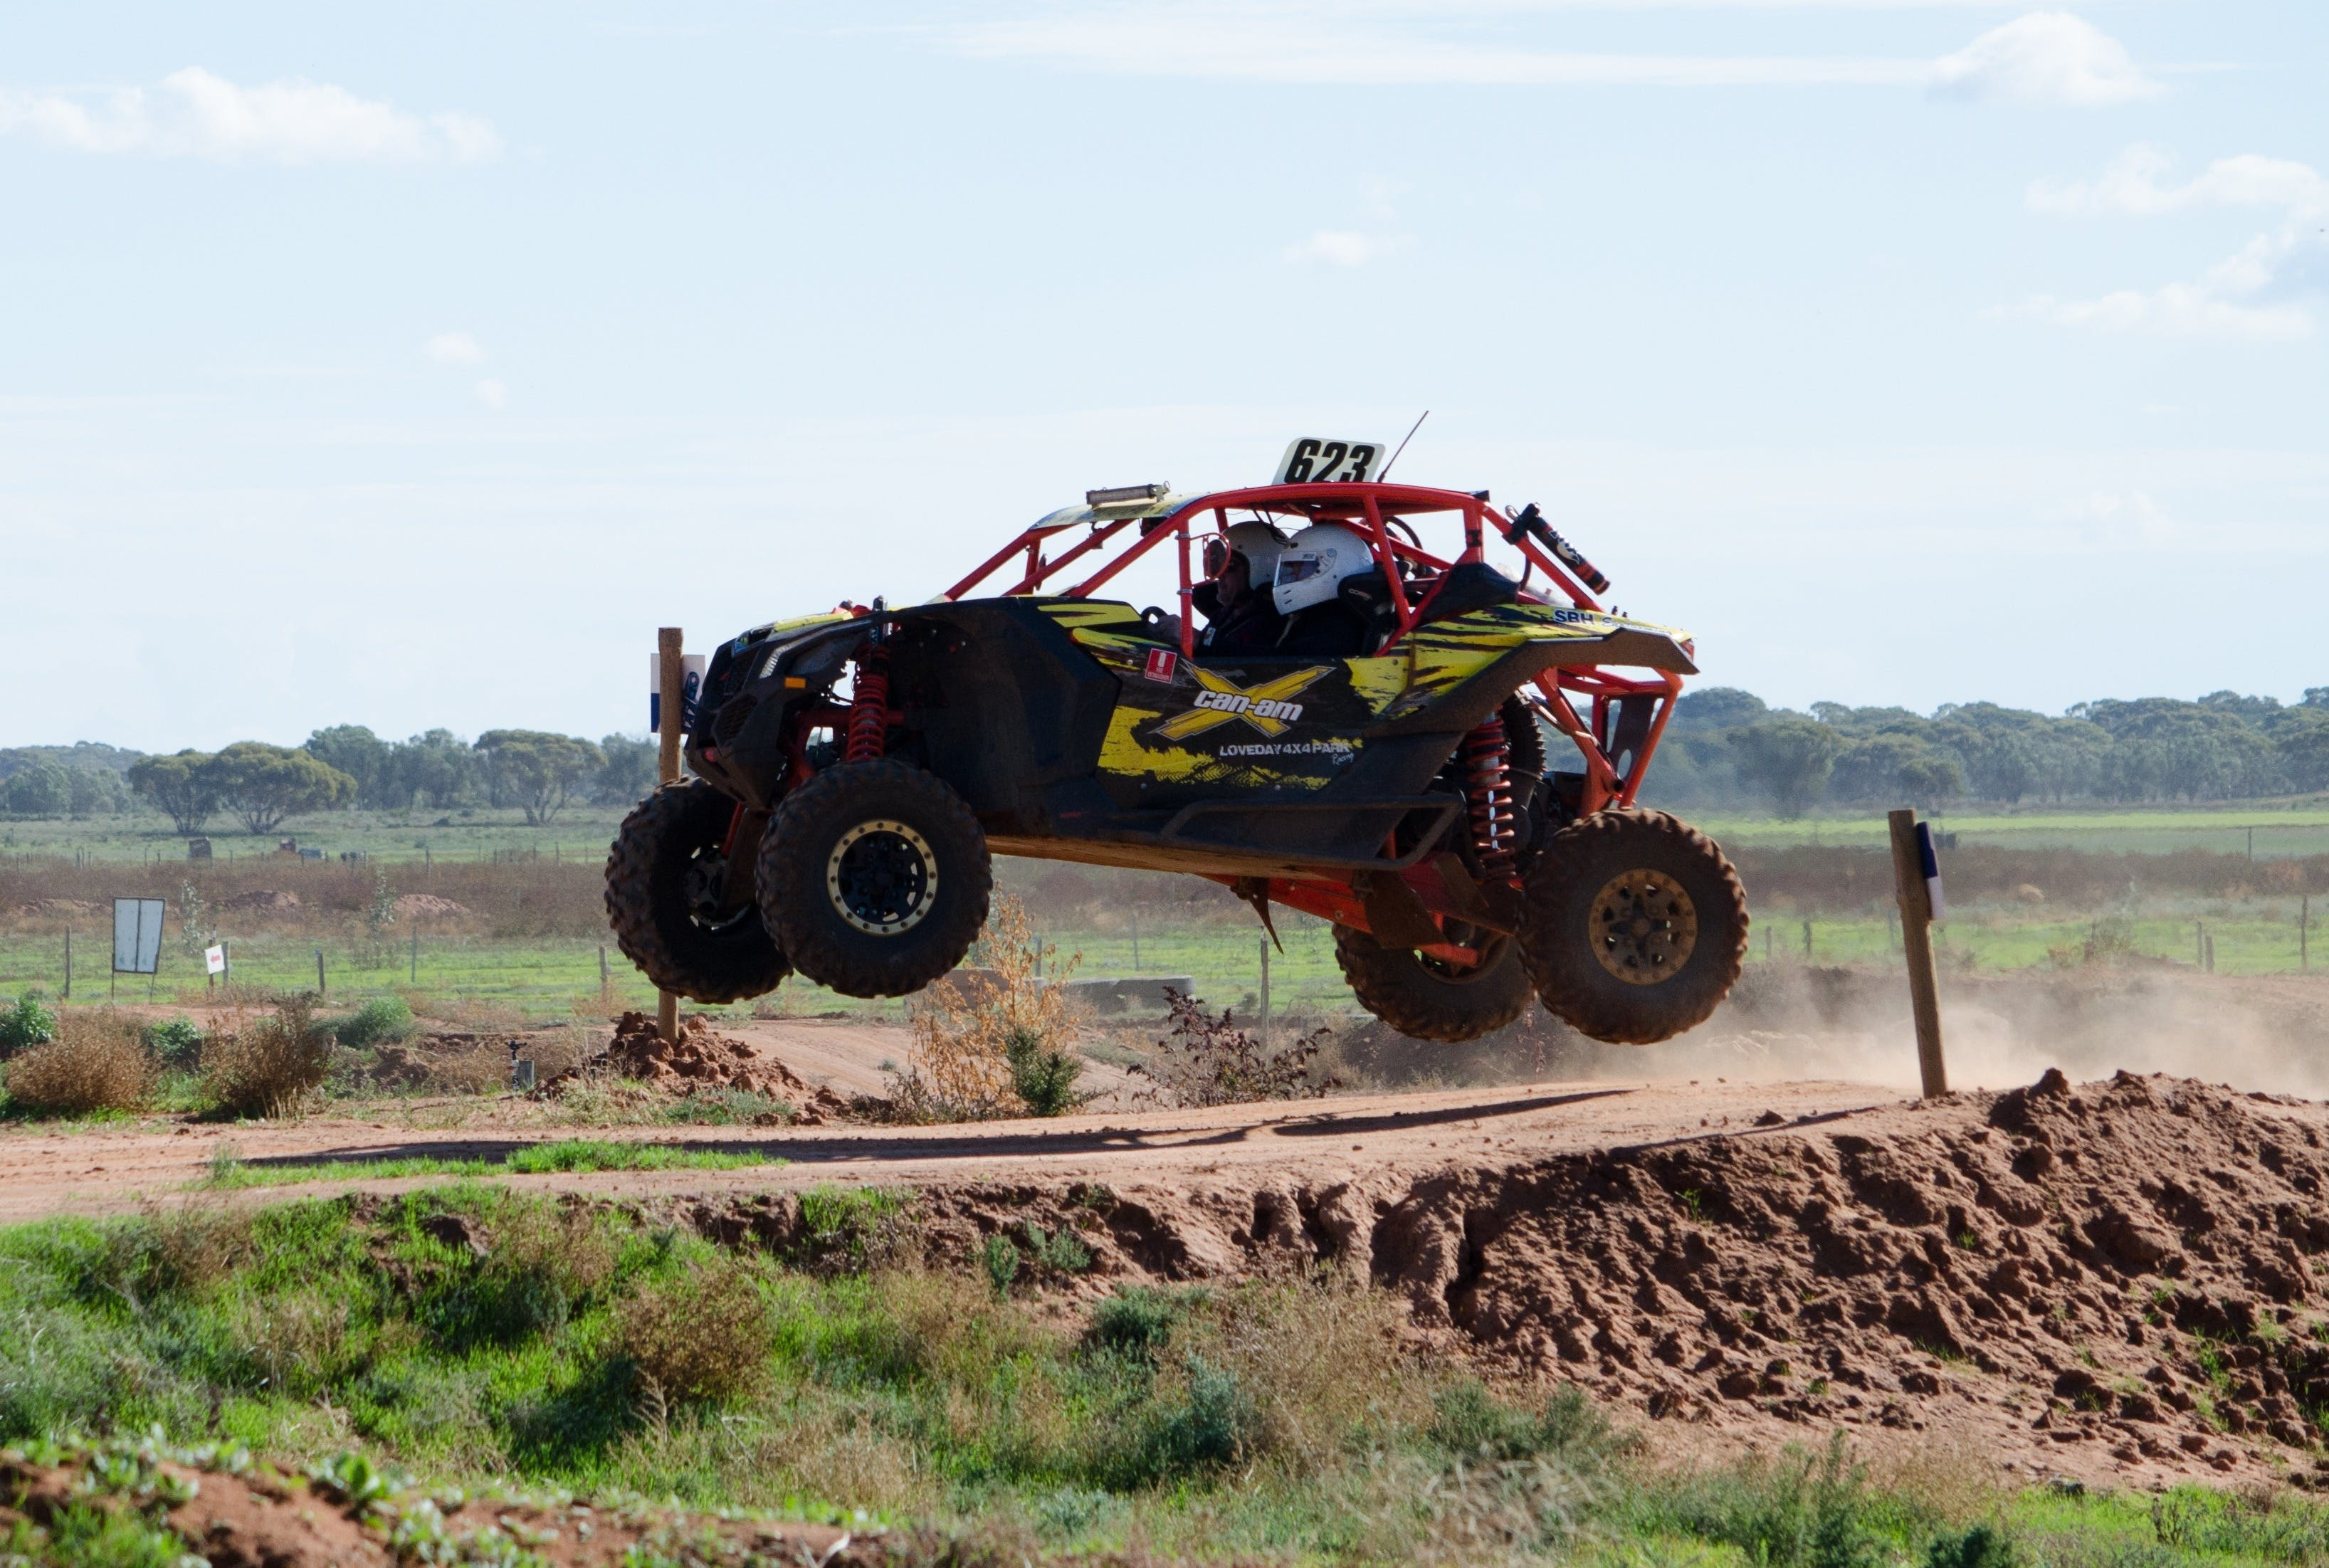 Turbo Buggy Ride - Accommodation Cairns